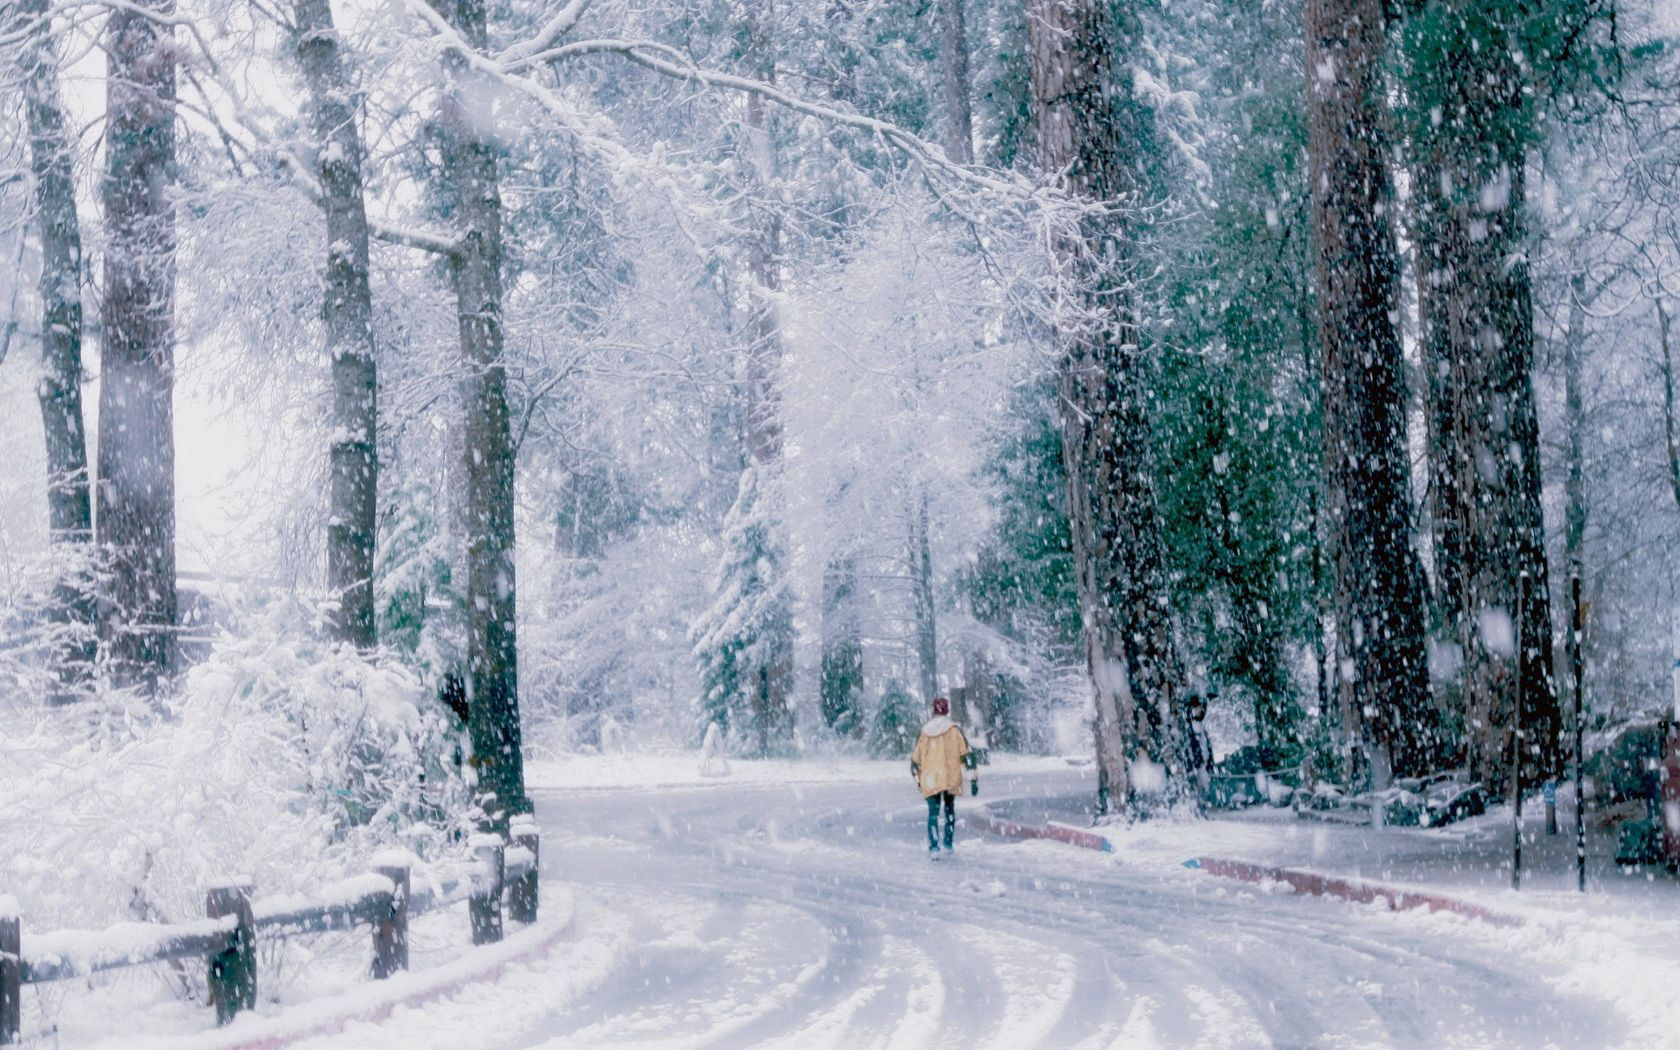 138686 download wallpaper Nature, Park, Snow, Stroll, Human, Person, Back, Painting, Art screensavers and pictures for free